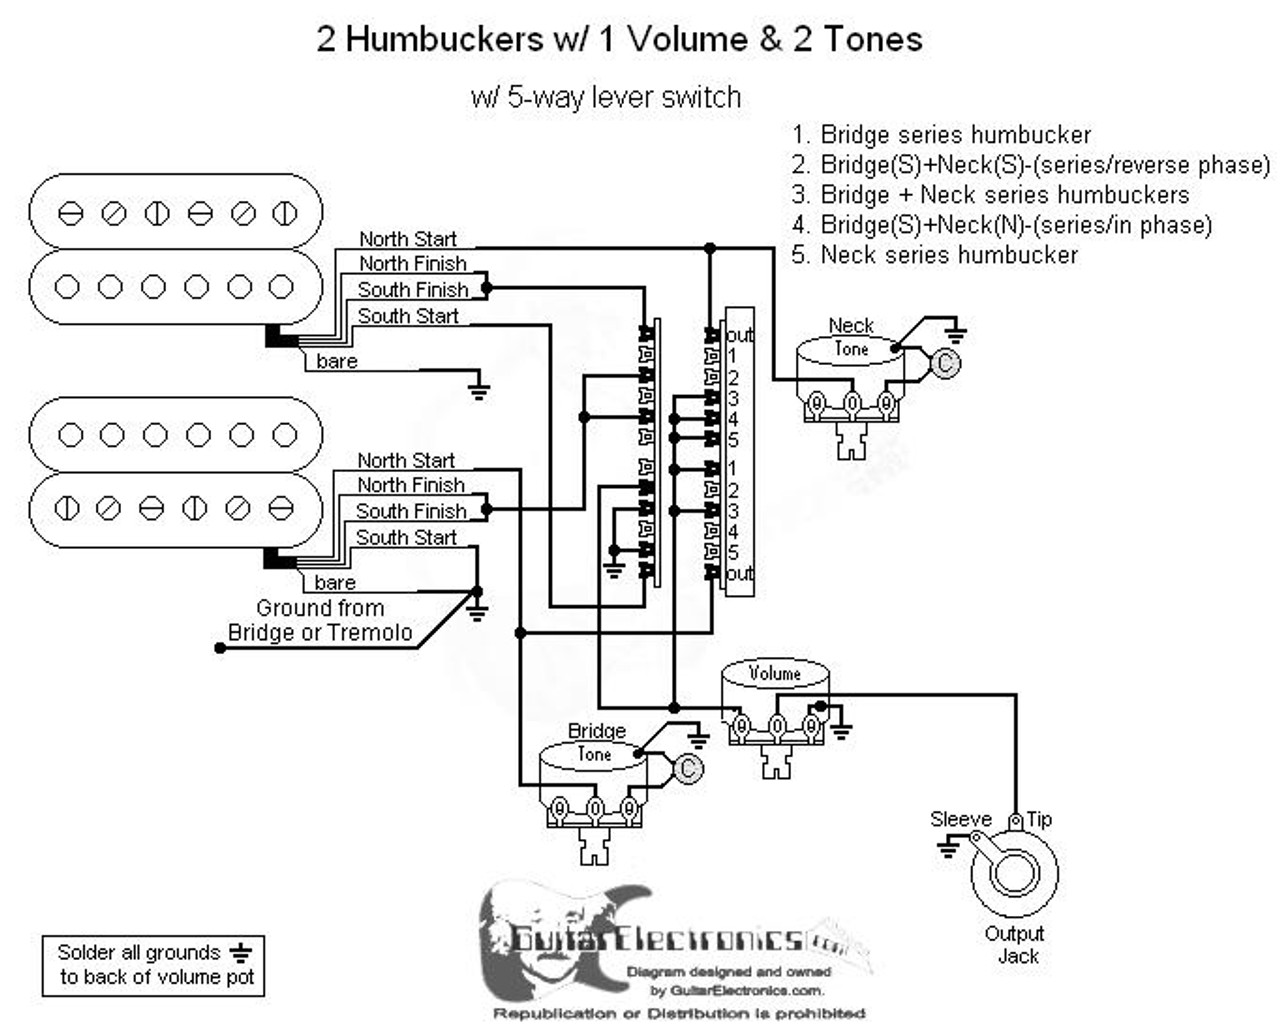 small resolution of guitar wiring diagram 2 humbuckers 1 volume wiring diagrams terms2 humbuckers 5 way lever switch 1